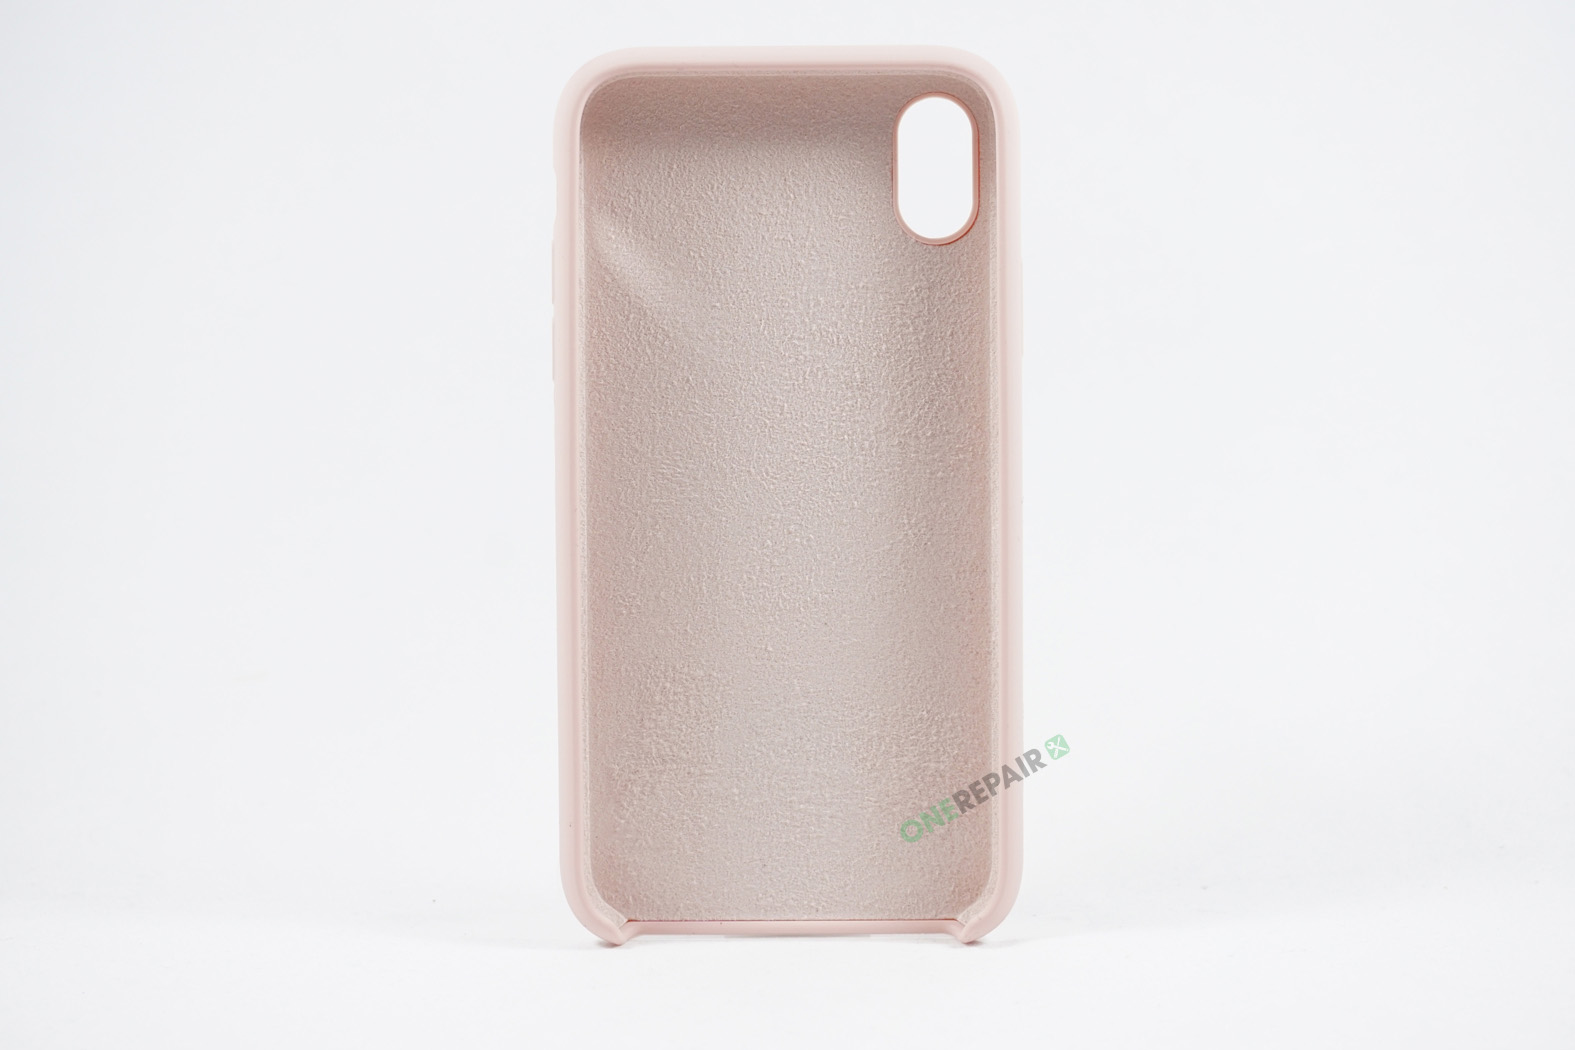 352064_iPhone_Xs_Max_Silikonecover_Cover_Beige_Pastel_Lyseroed_Pink_OneRepair_00003